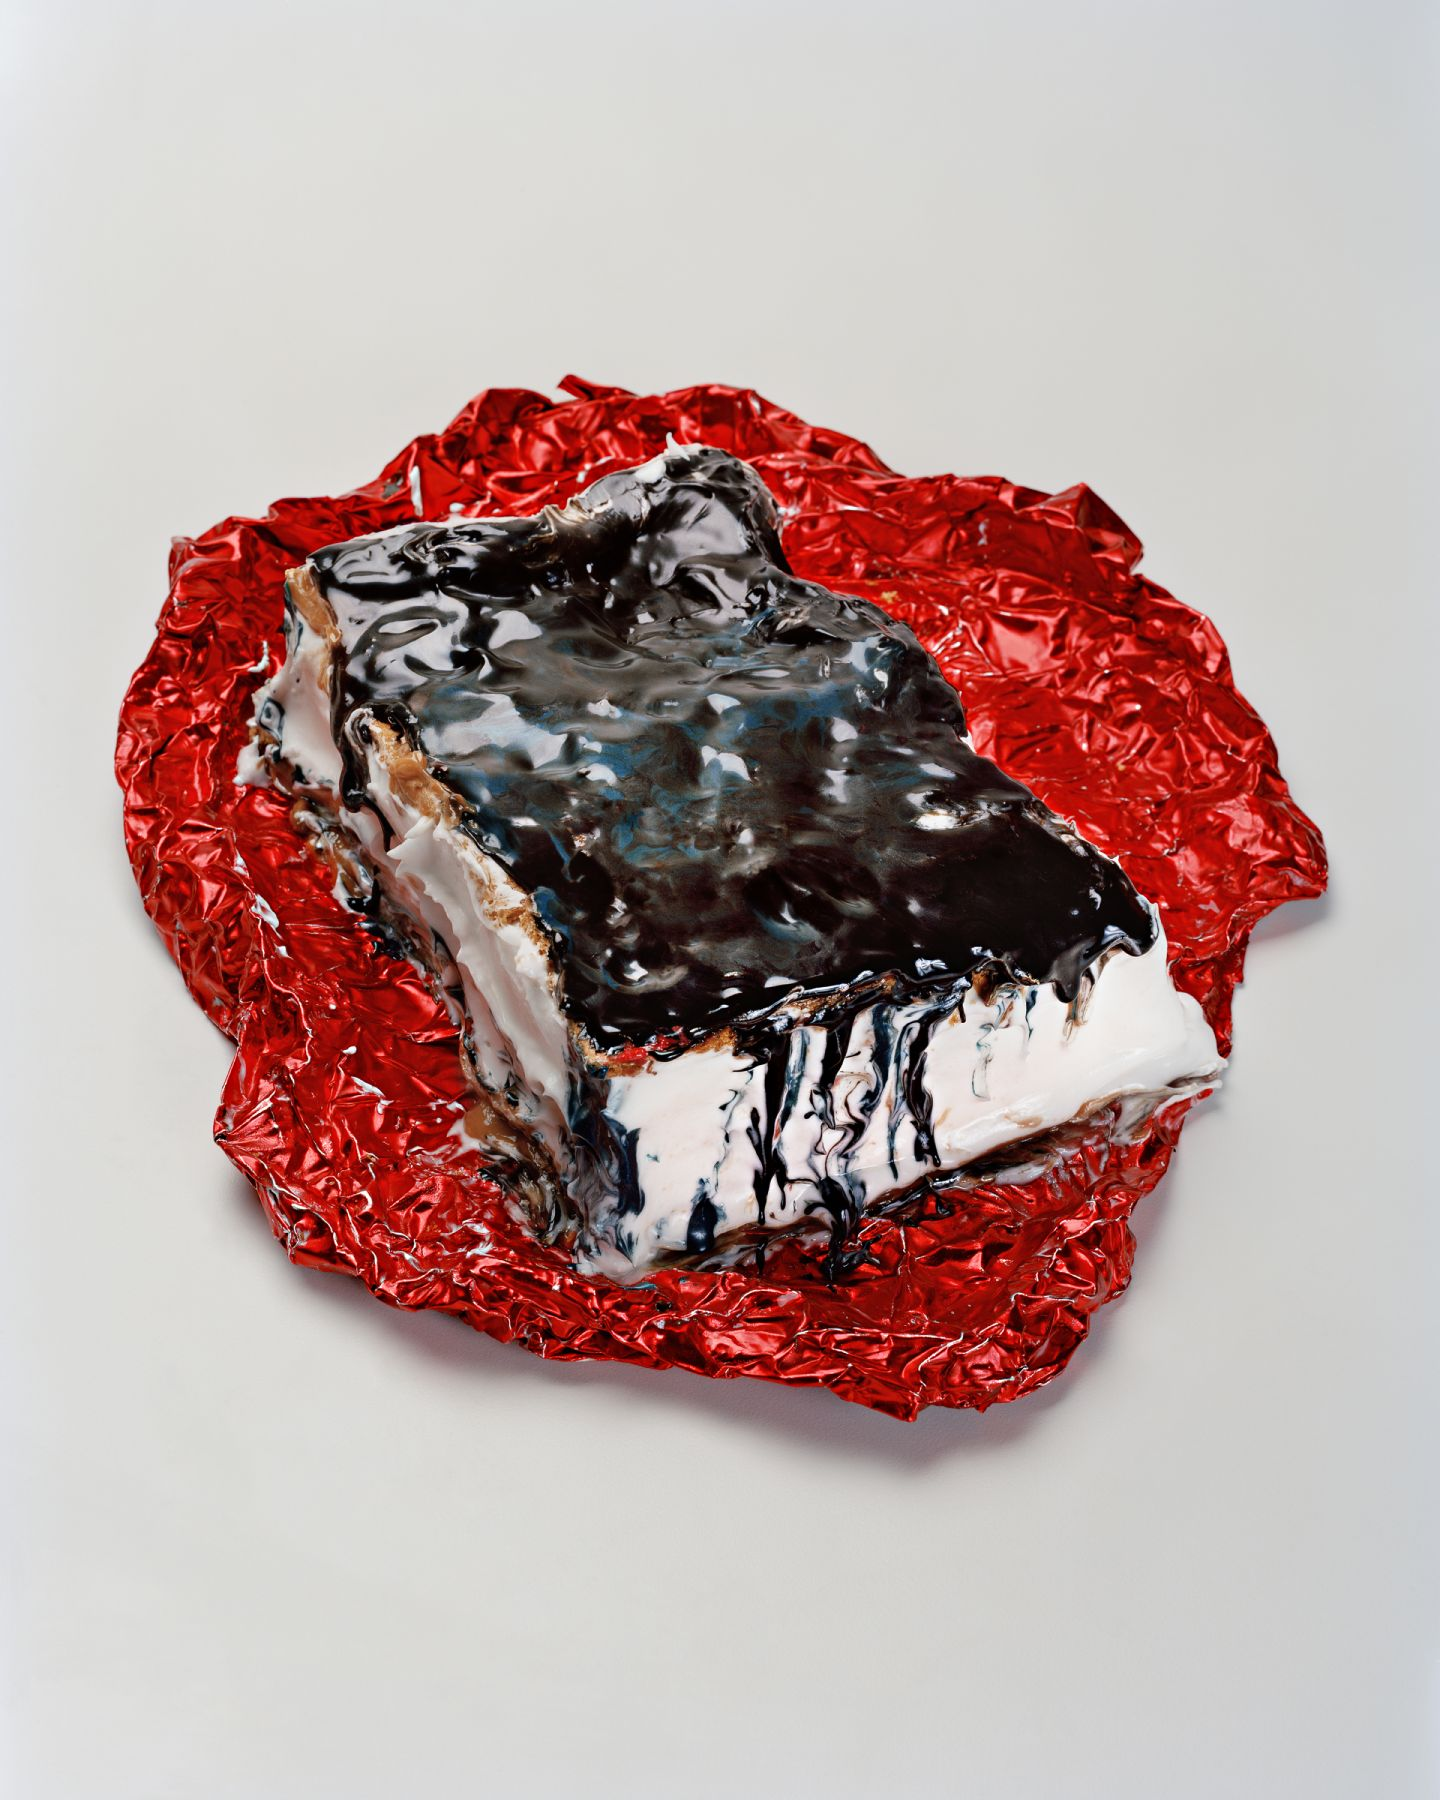 Ice Cream Sandwich, 2018. Archival pigment print, 71 x 57 inches.